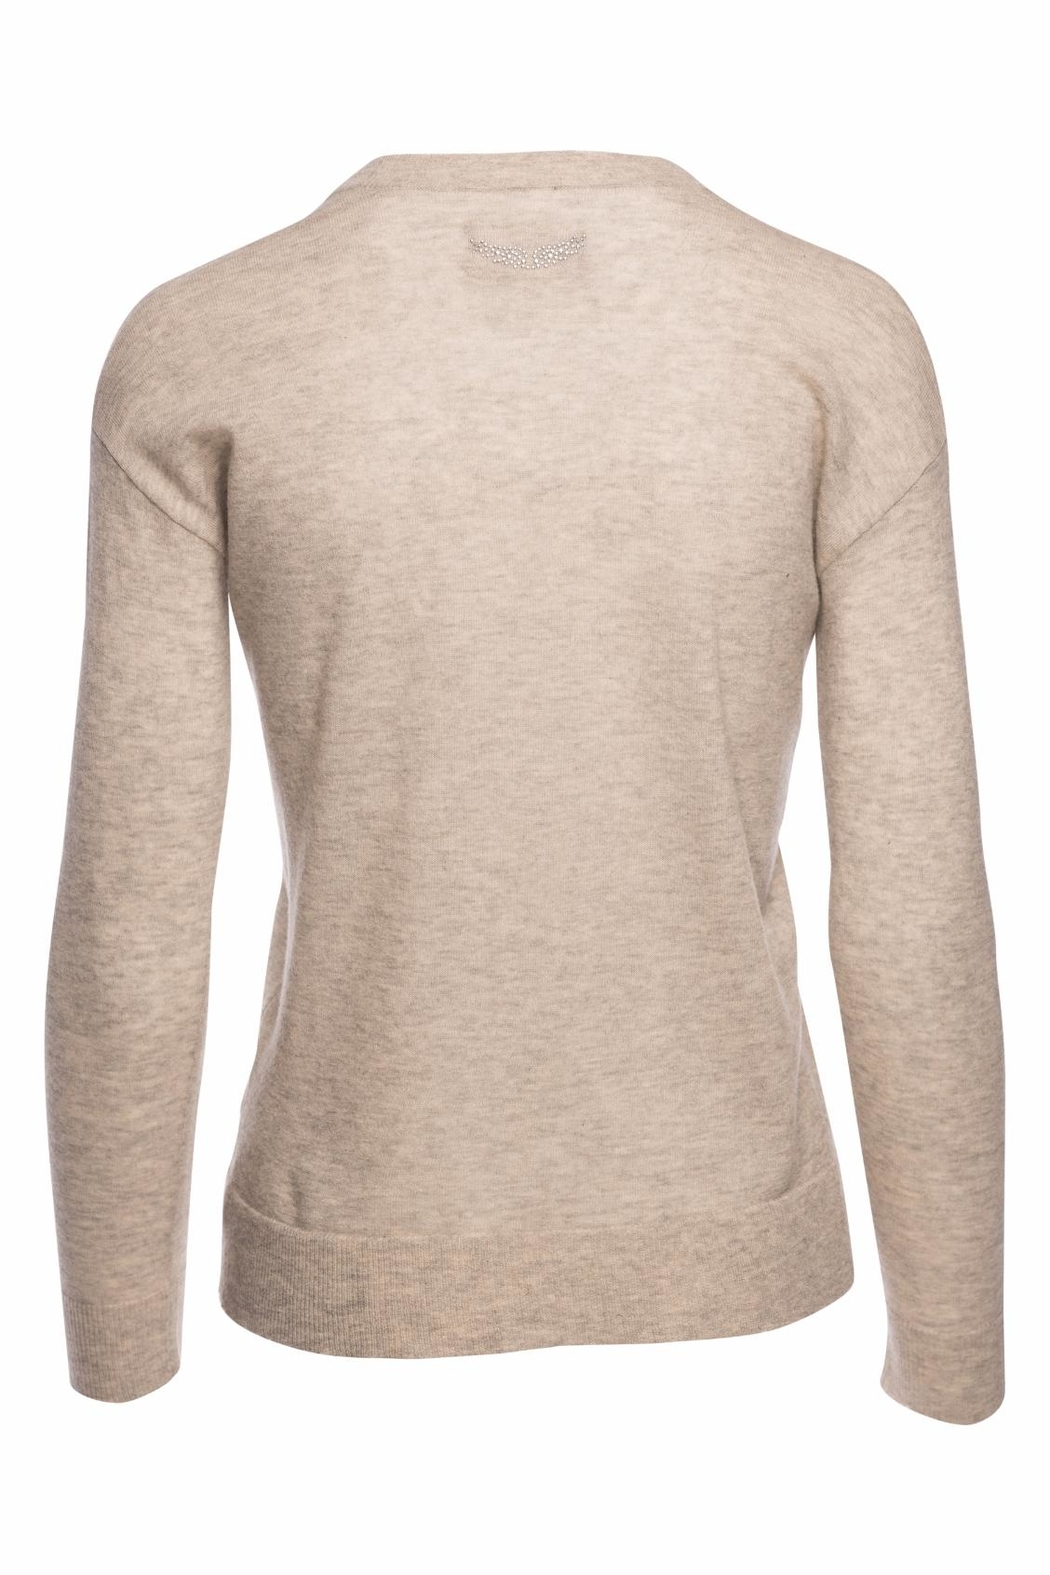 Zadig & Voltaire Happy Cashmere Sweater - Front Full Image